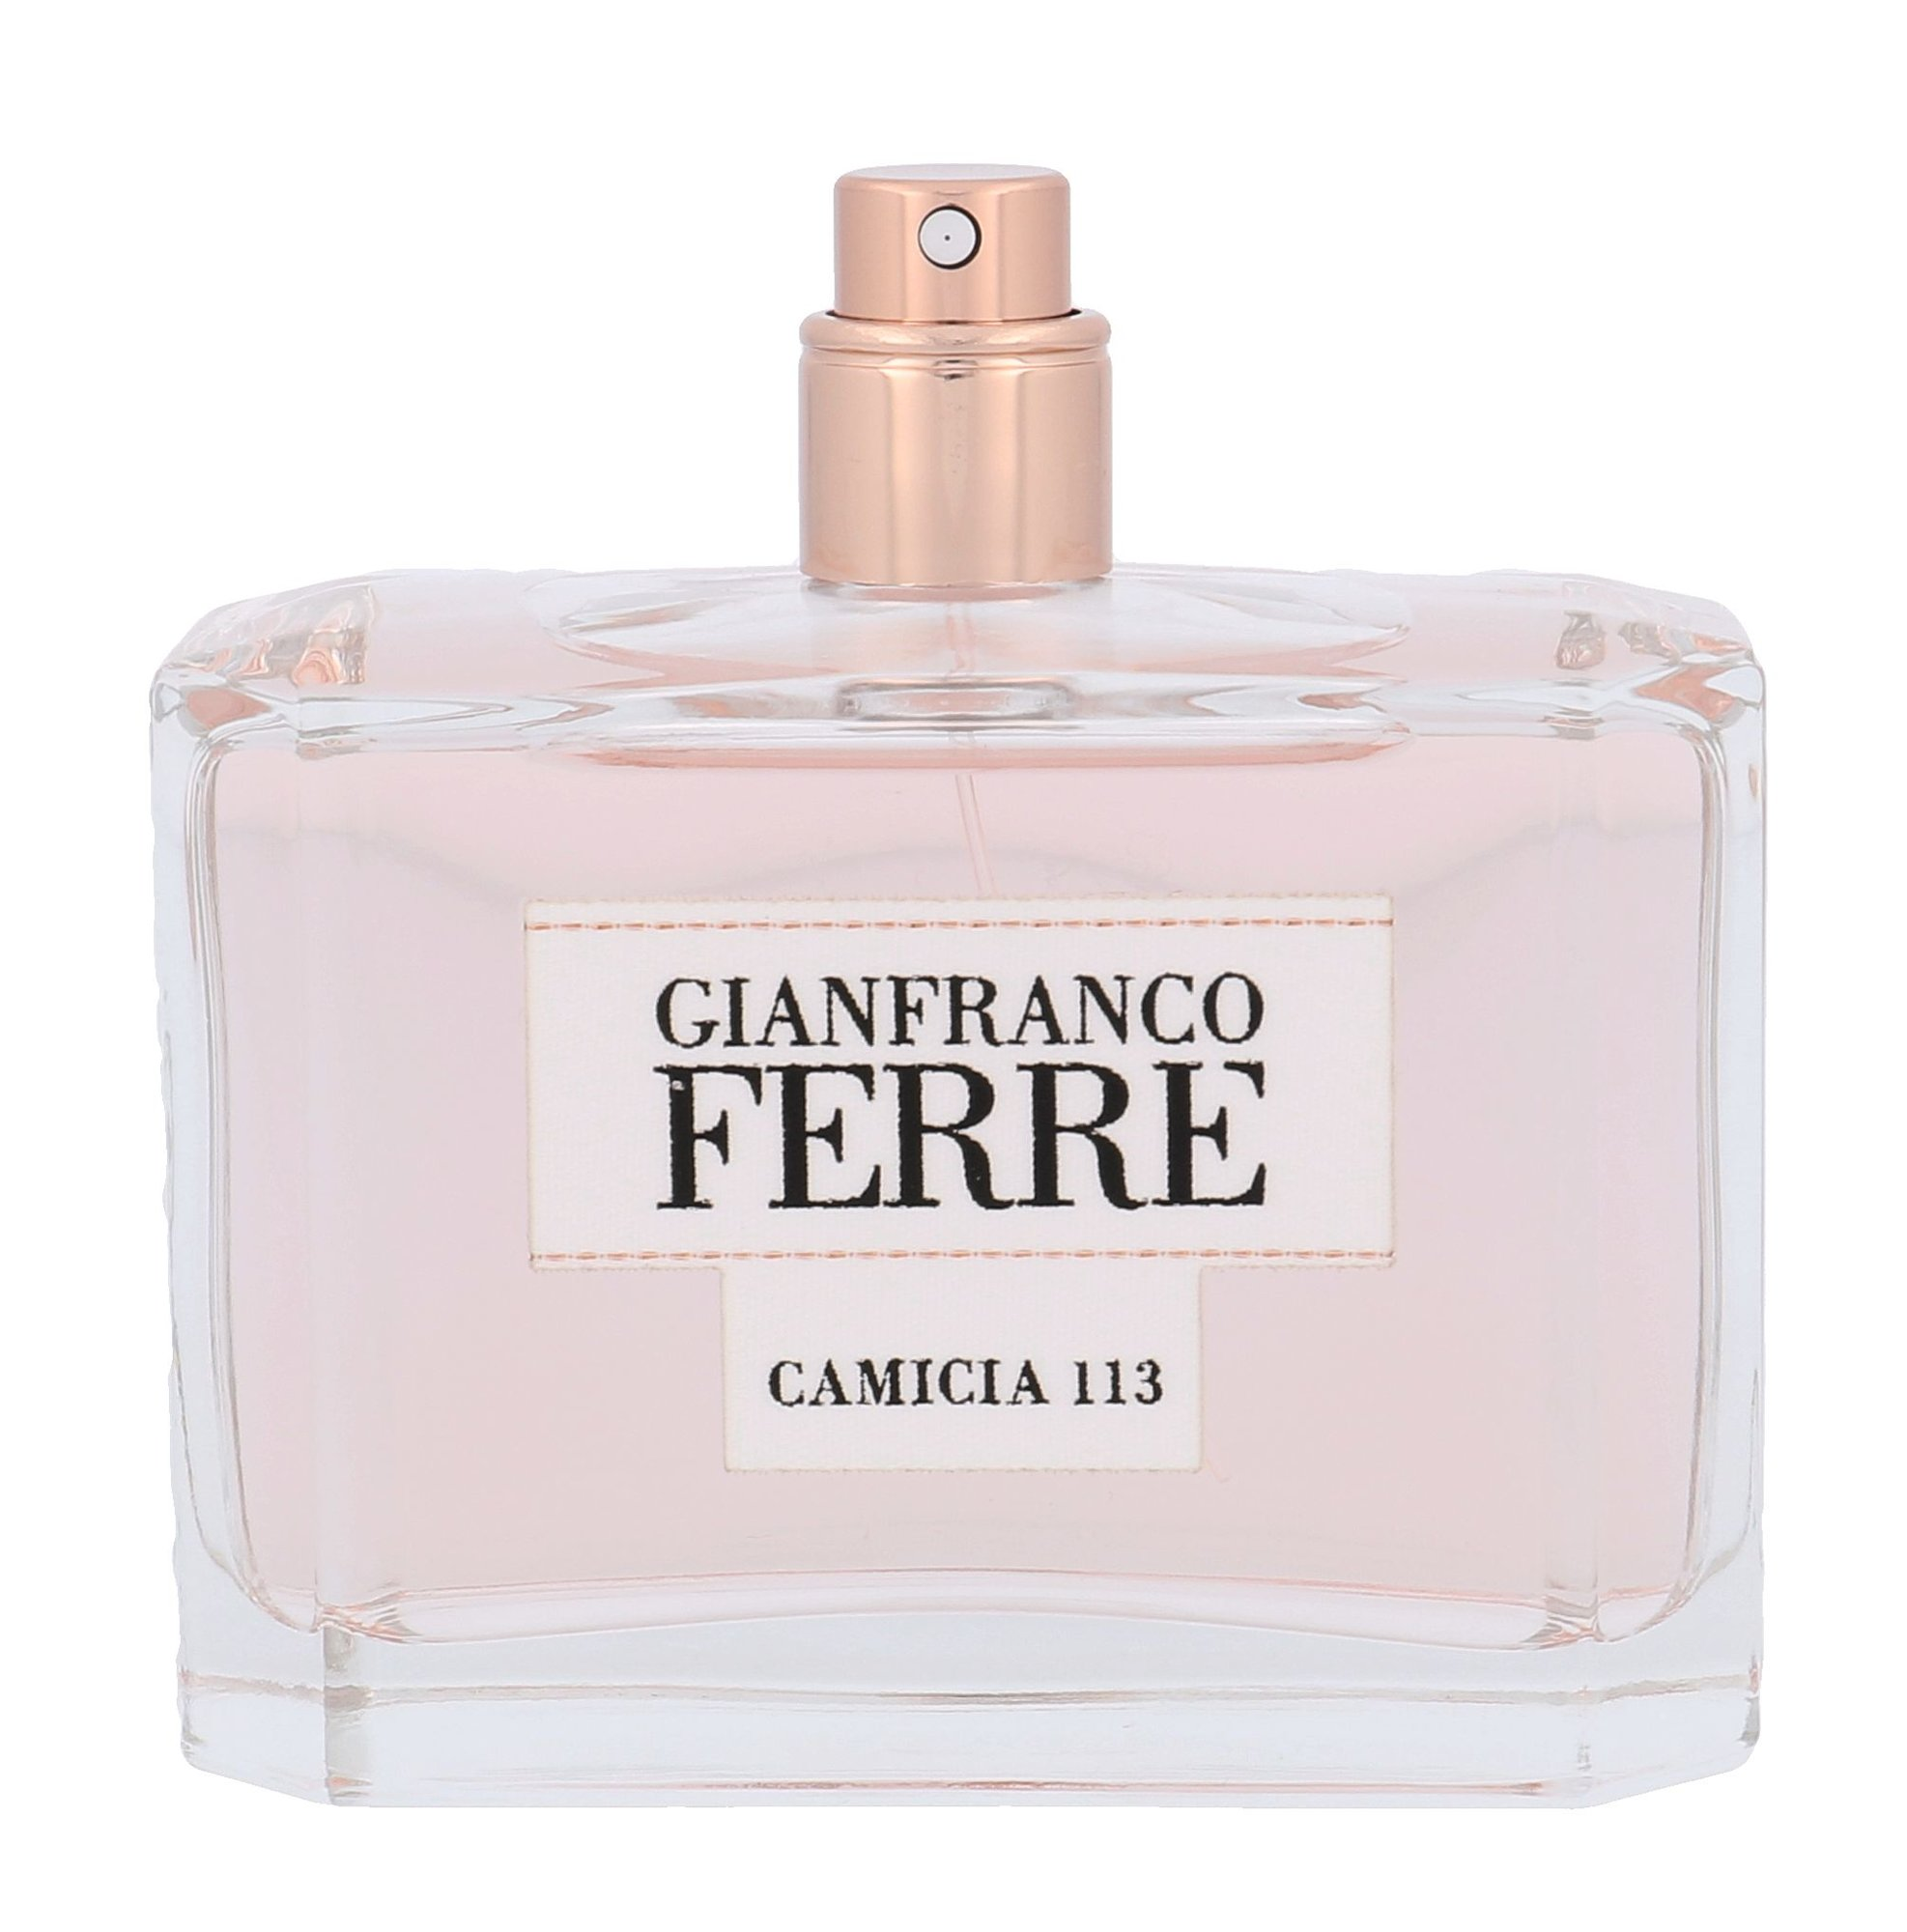 Gianfranco Ferre Camicia 113 EDT 100ml